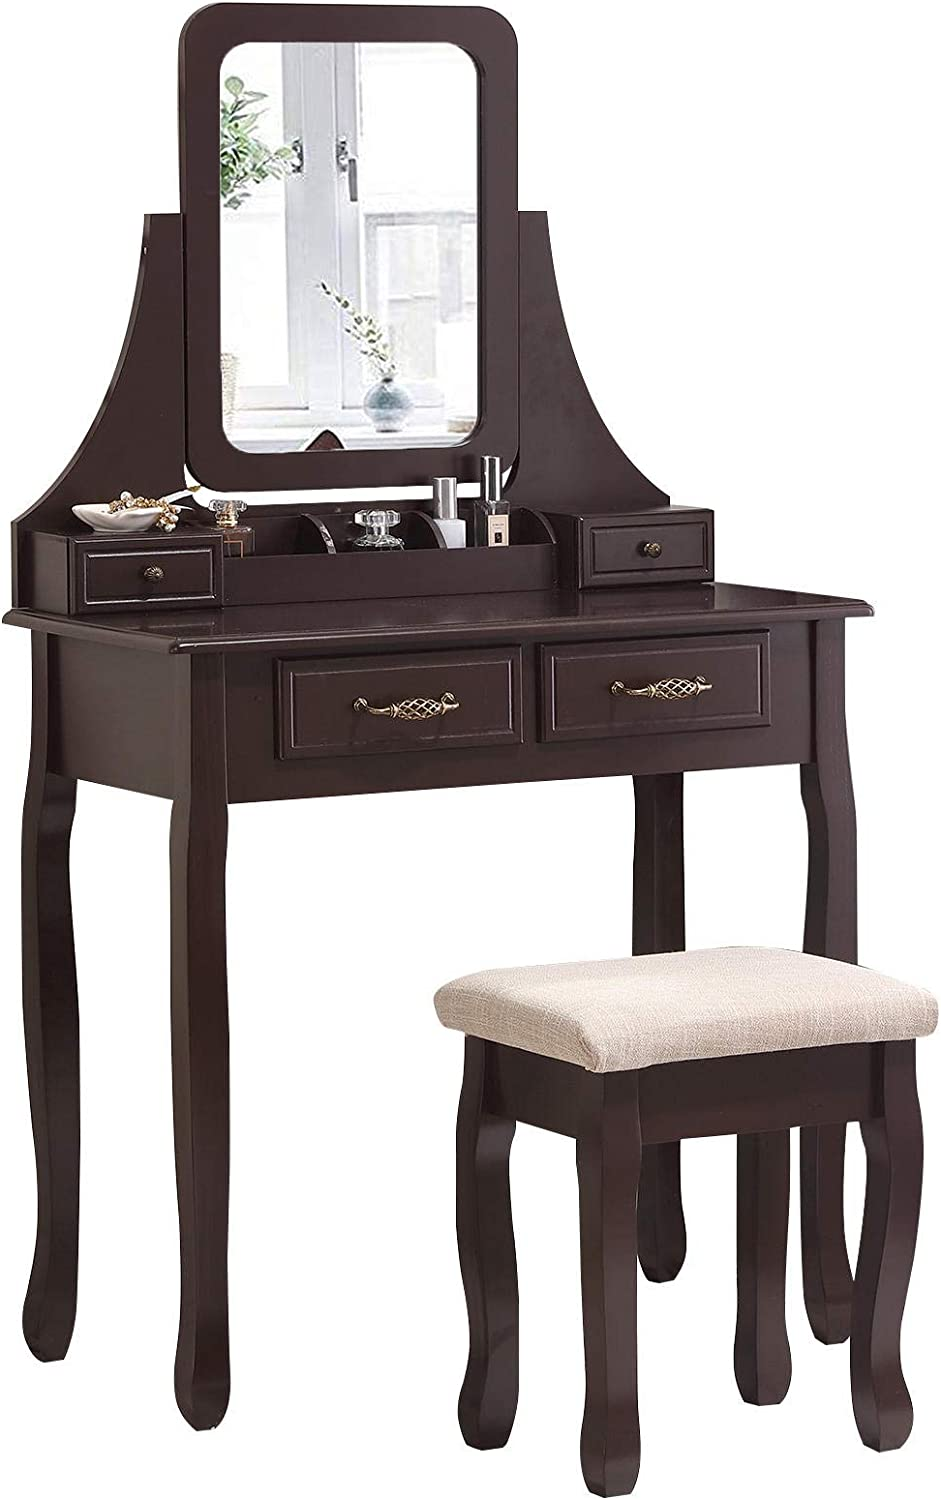 Unihome Vanity Table Brown with Mirror Black Small Dressing Table with with 4 Drawers Makeup Table for Women